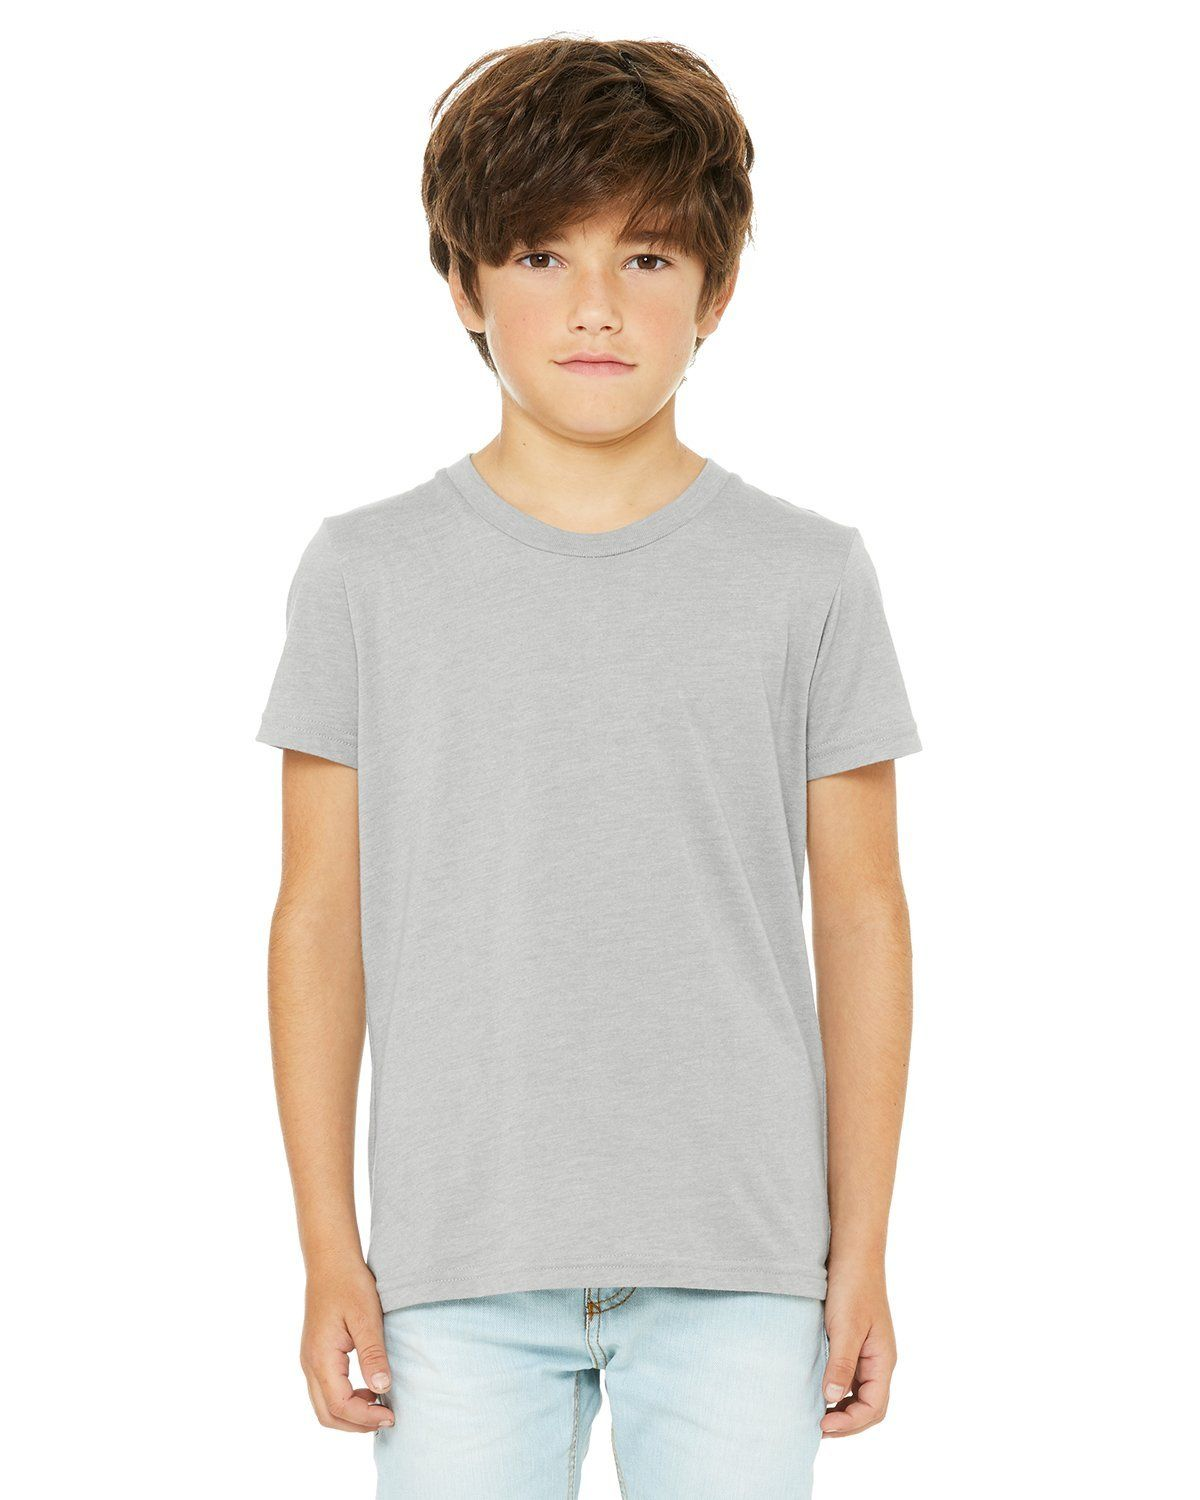 c3a8af3c Bella + Canvas Youth Jersey Short Sleeve T-Shirt 3001Y Heather Stone ...